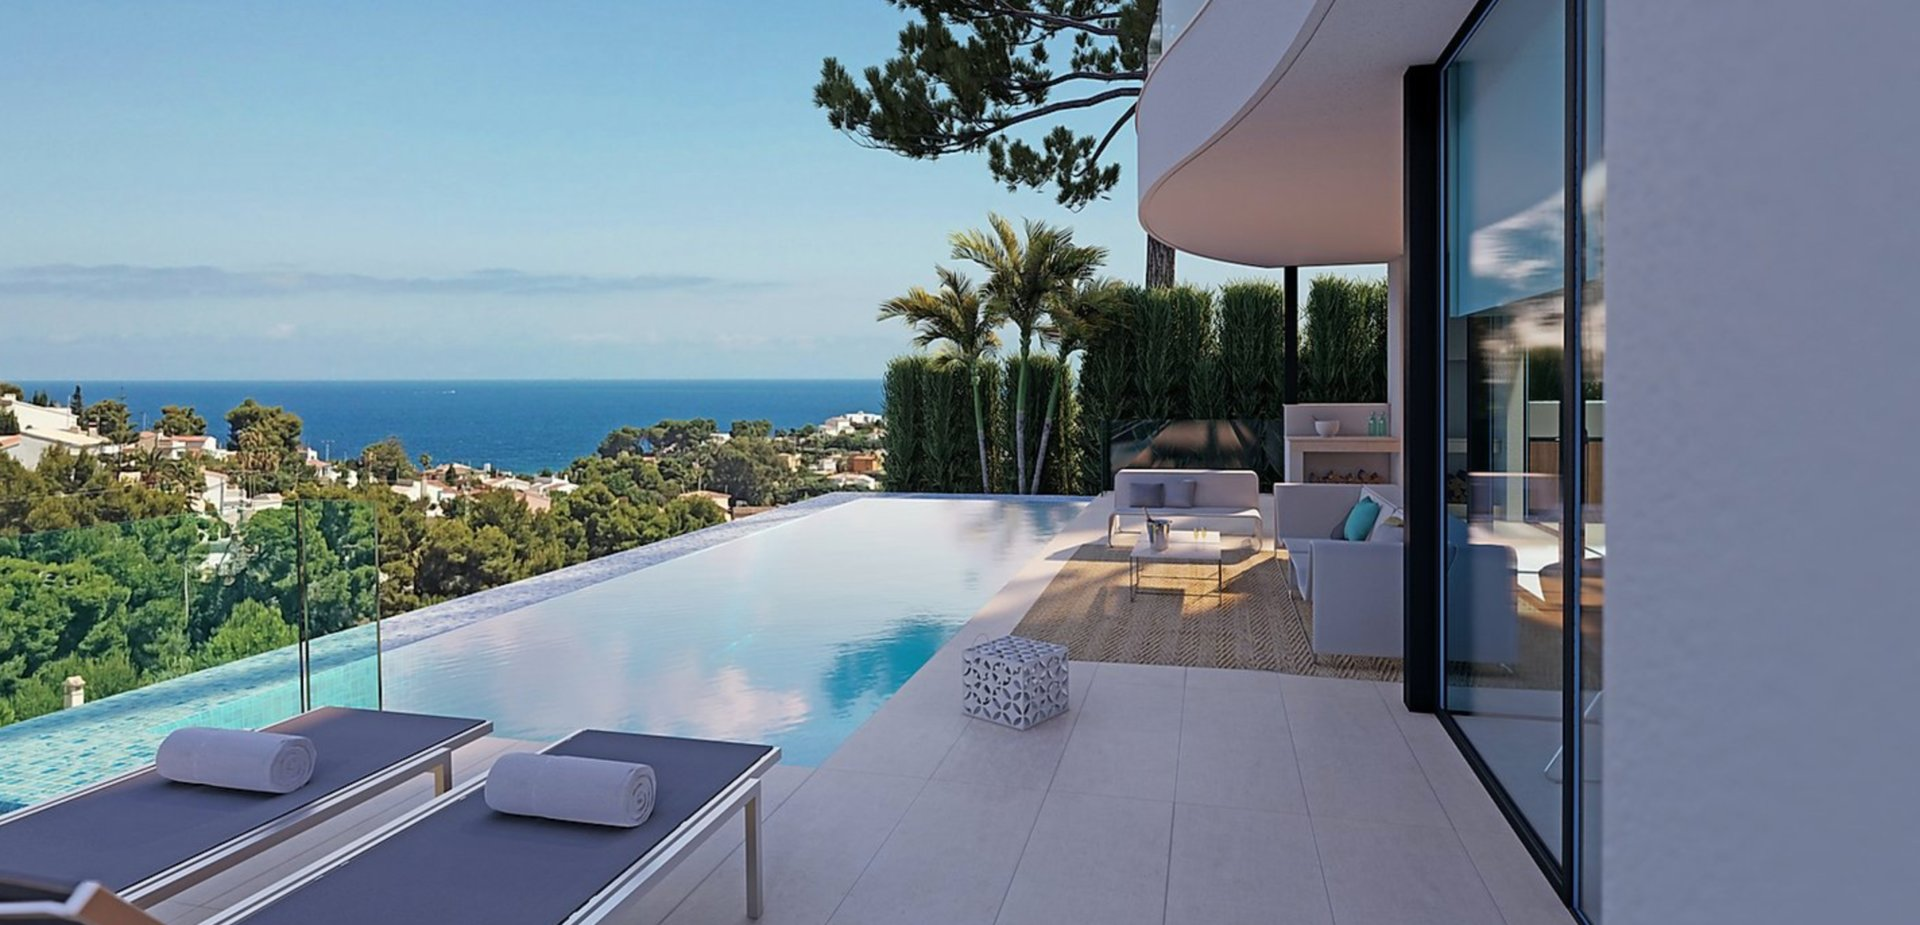 New build villa with 4 bedrooms and sea view